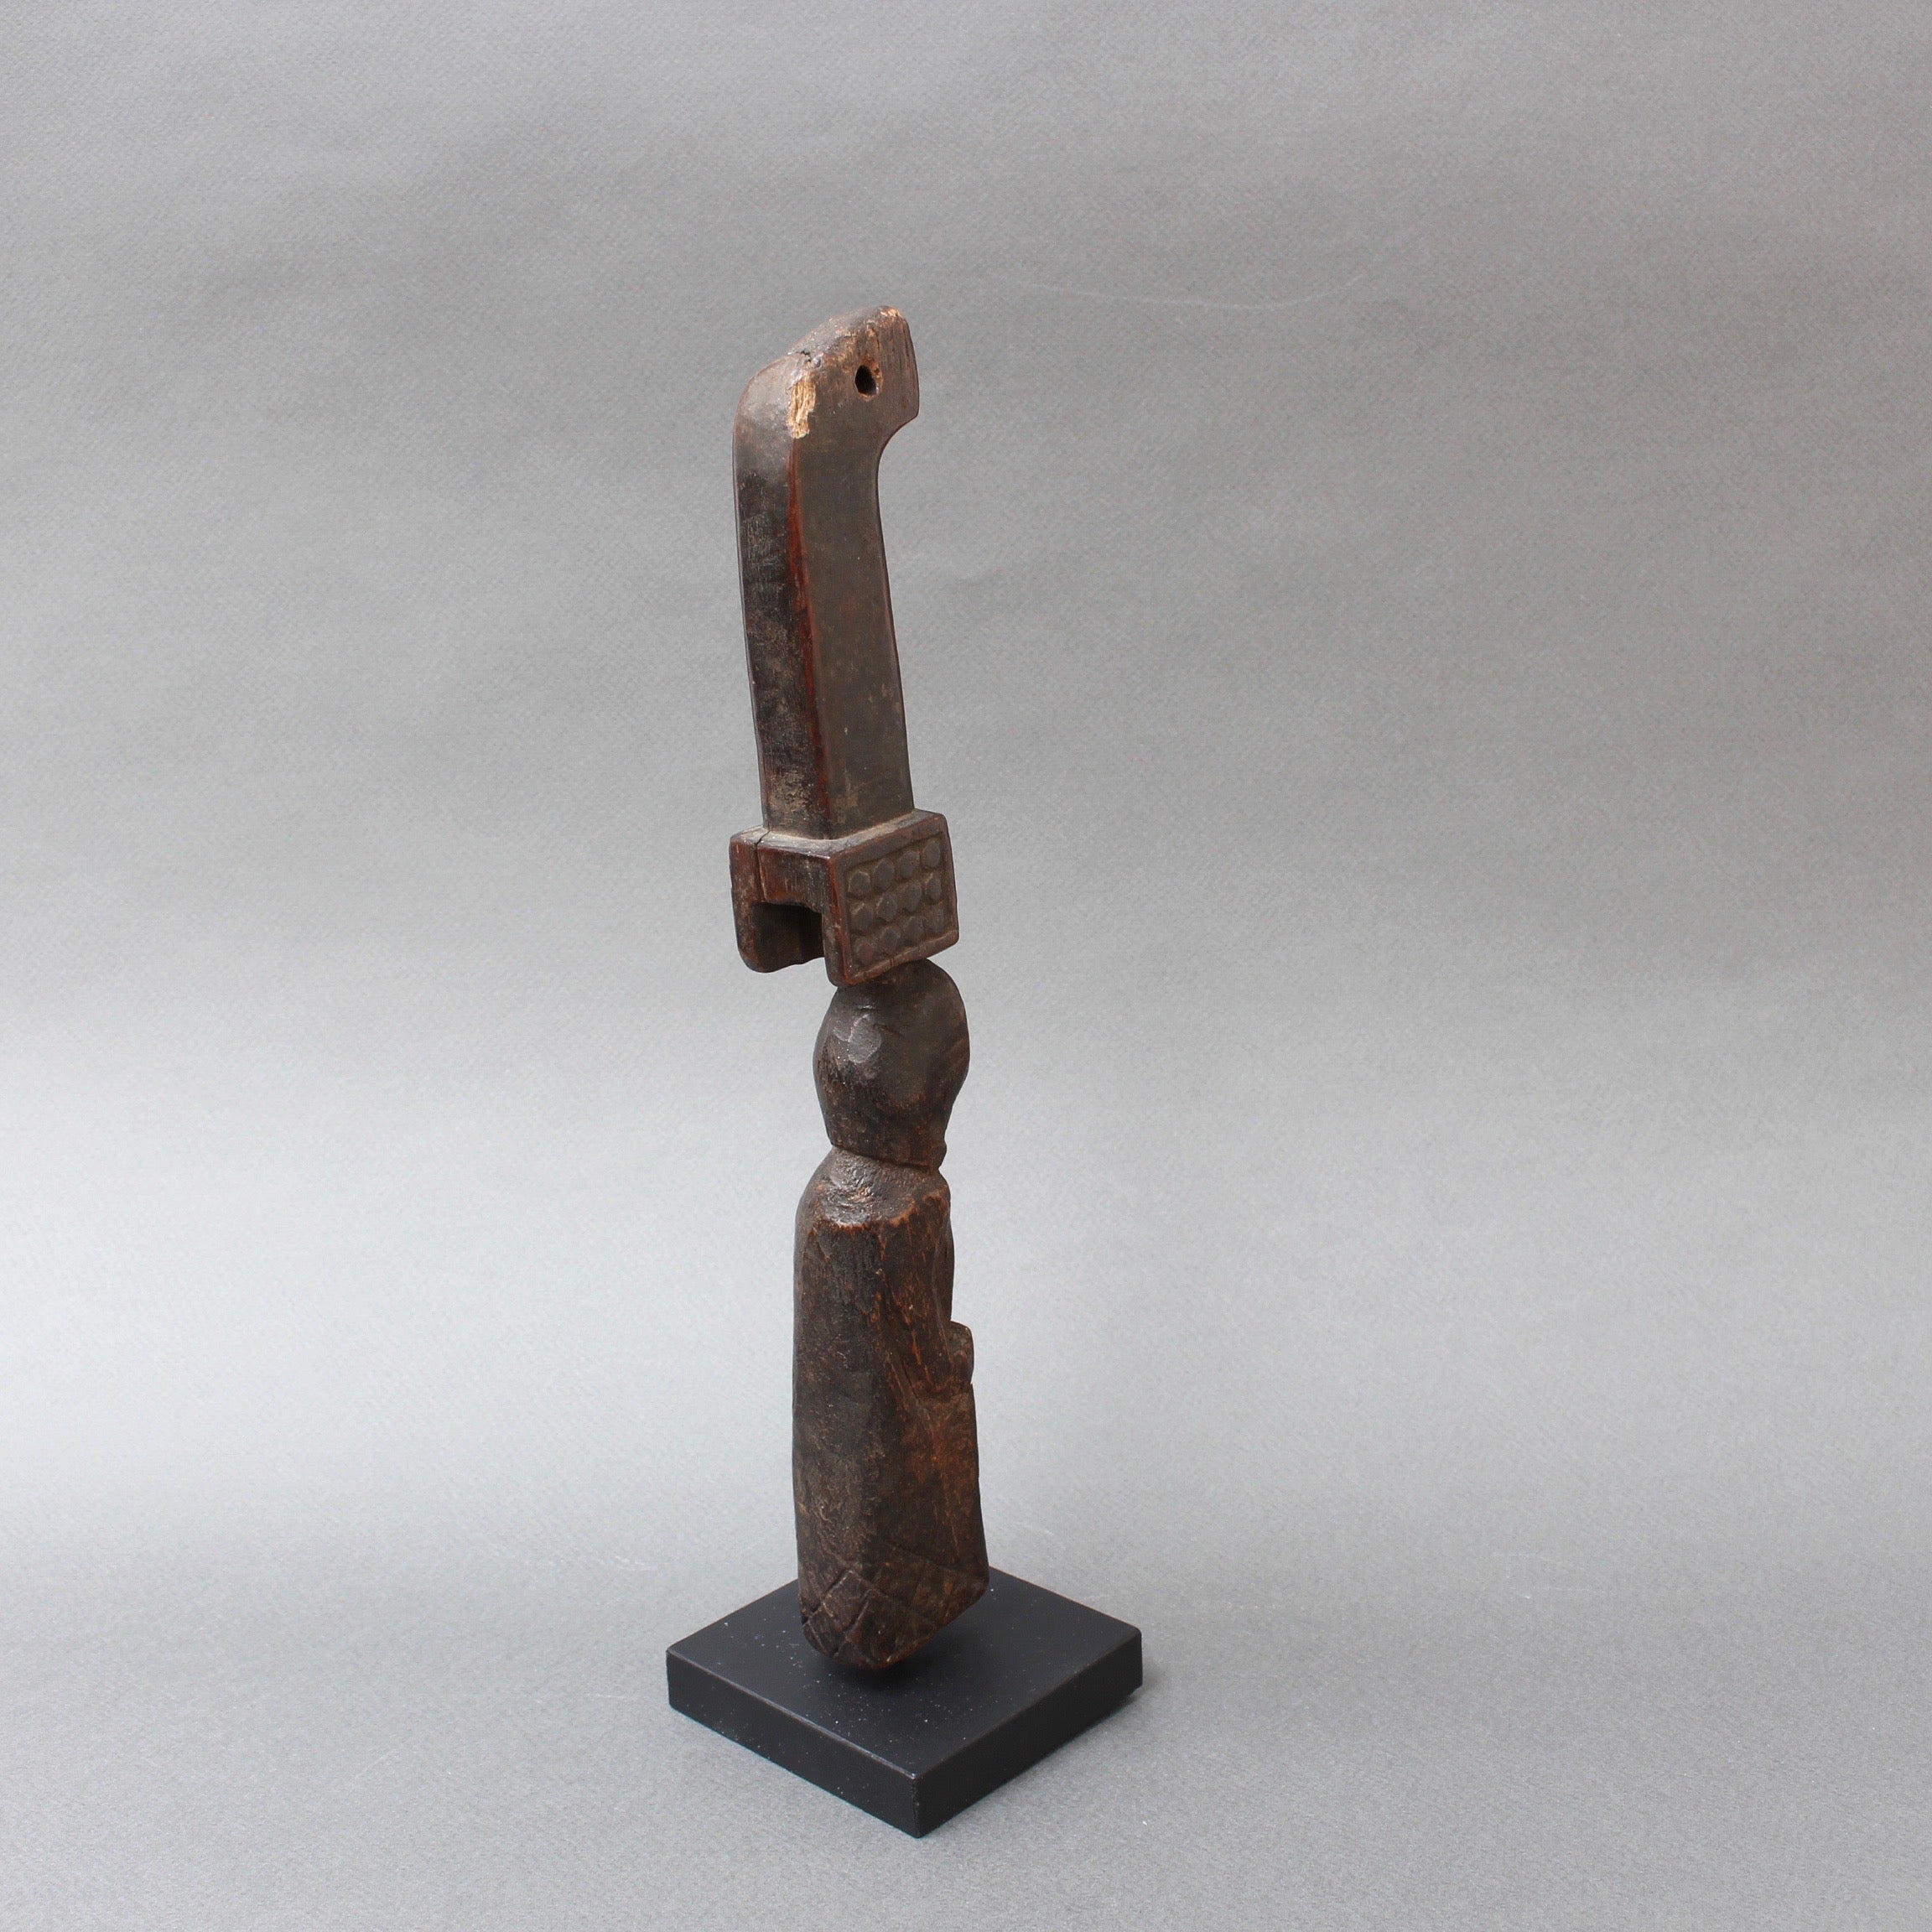 Carved Wooden Figure / Handle Tool from Timor Island, Indonesia (circa 1960s-70s)